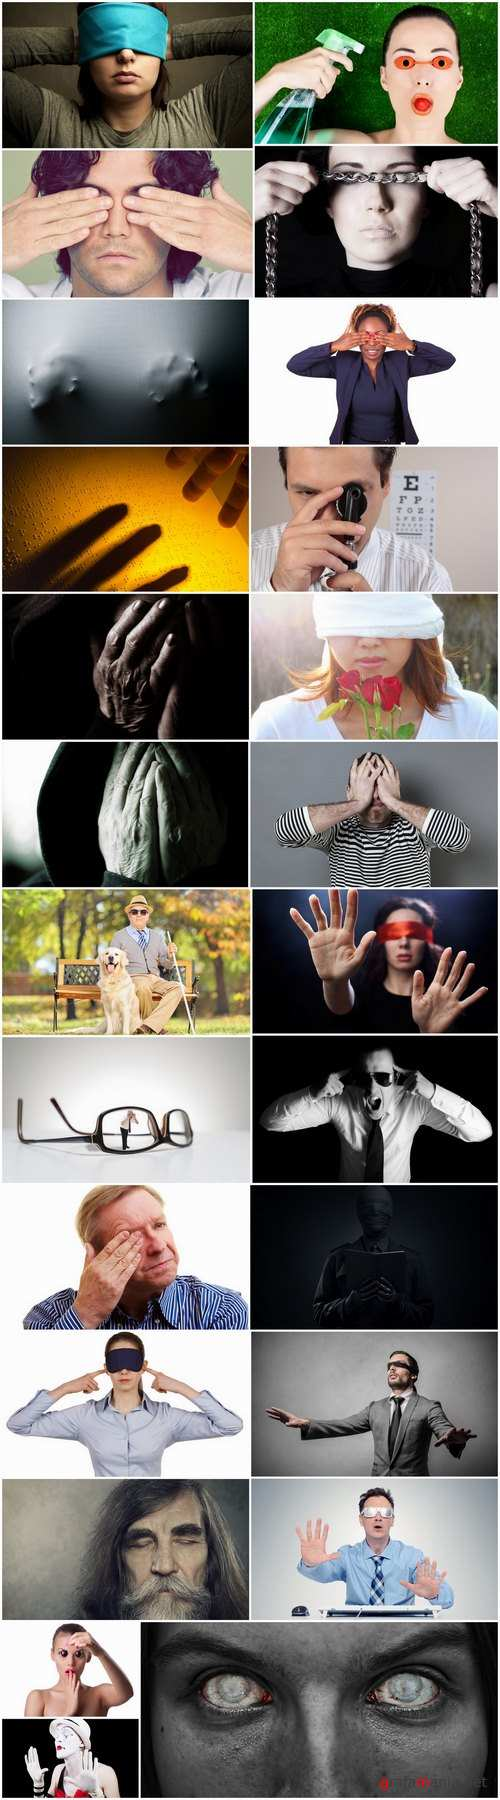 Blindness blind concept illustration man woman woman blindfold 25 HQ Jpeg